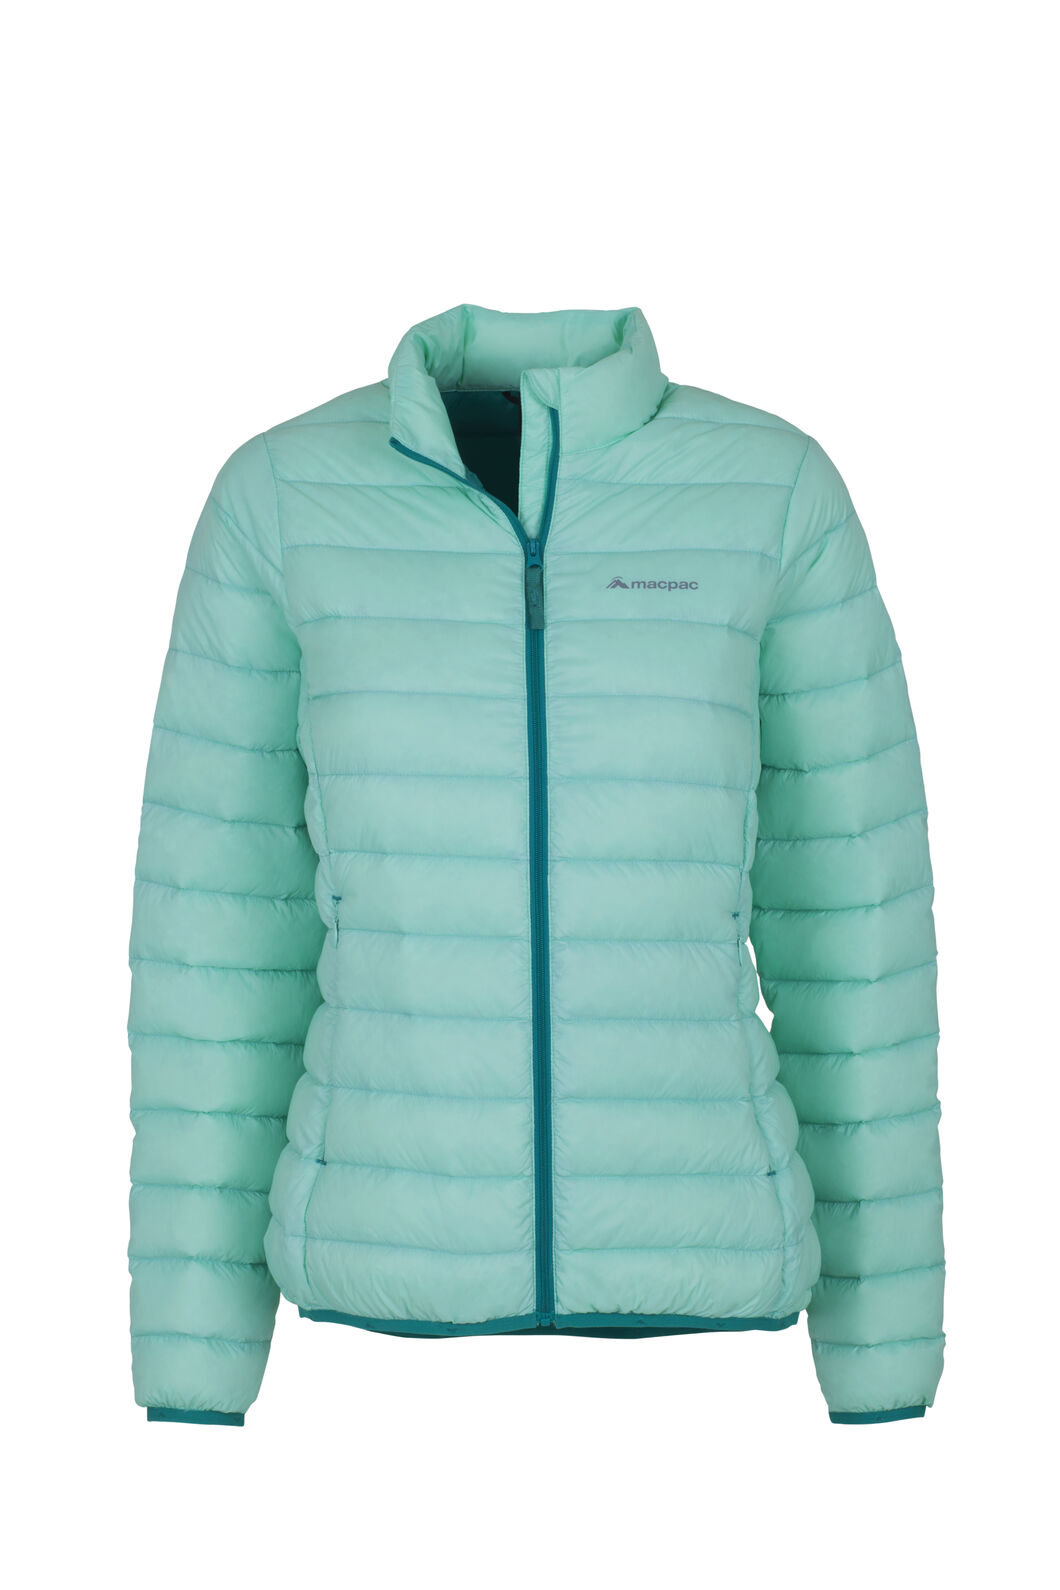 Uber Light Down Jacket - Women's, Ocean Wave, hi-res